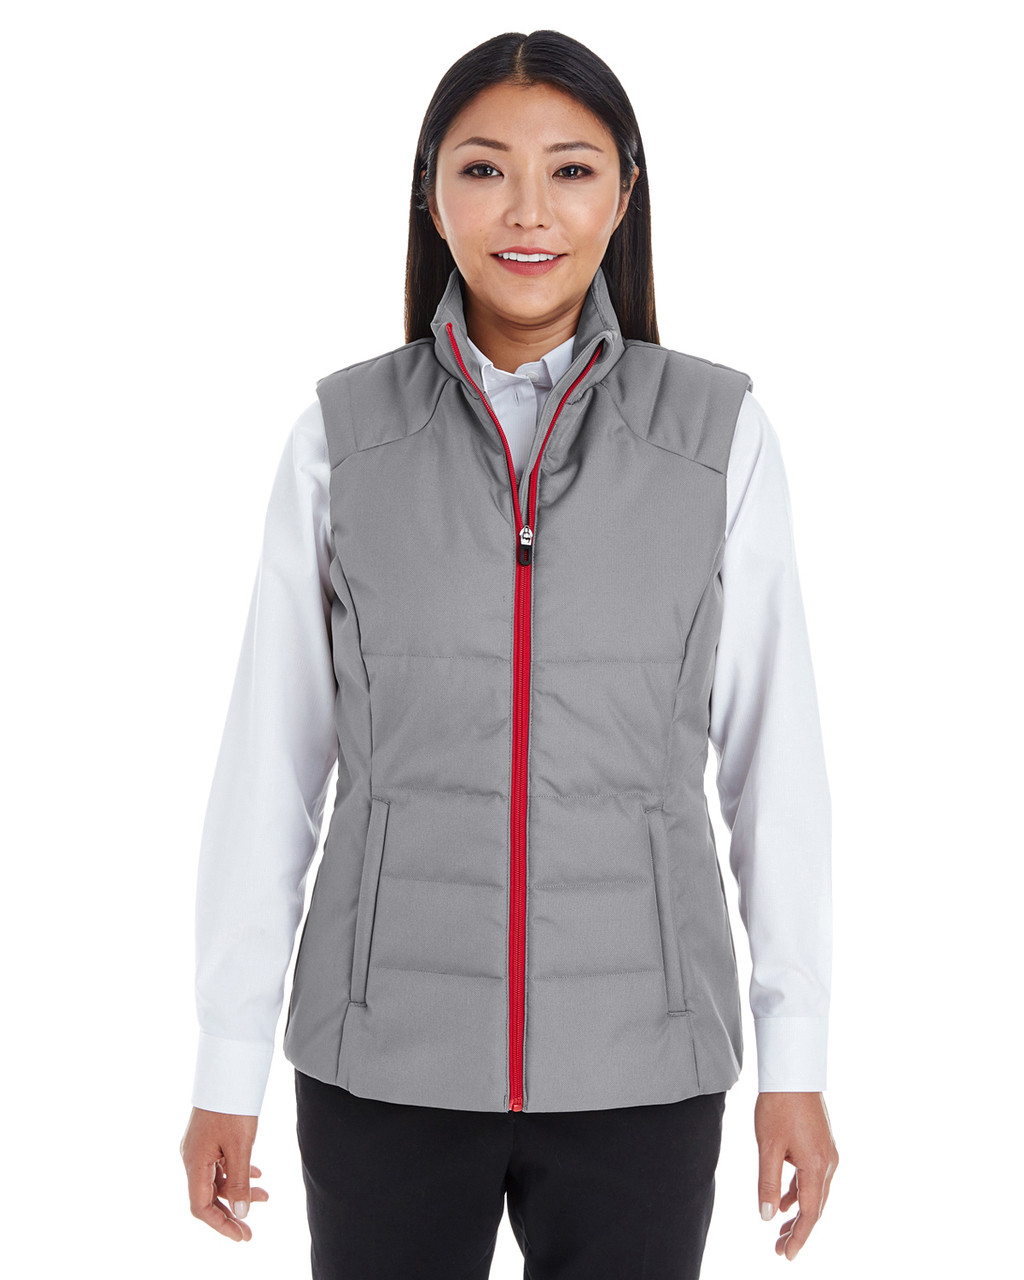 Graphite/Red - FRONT - NE702W Ash City - North End Ladies' Engage Interactive Insulated Vest Blankclothing.ca